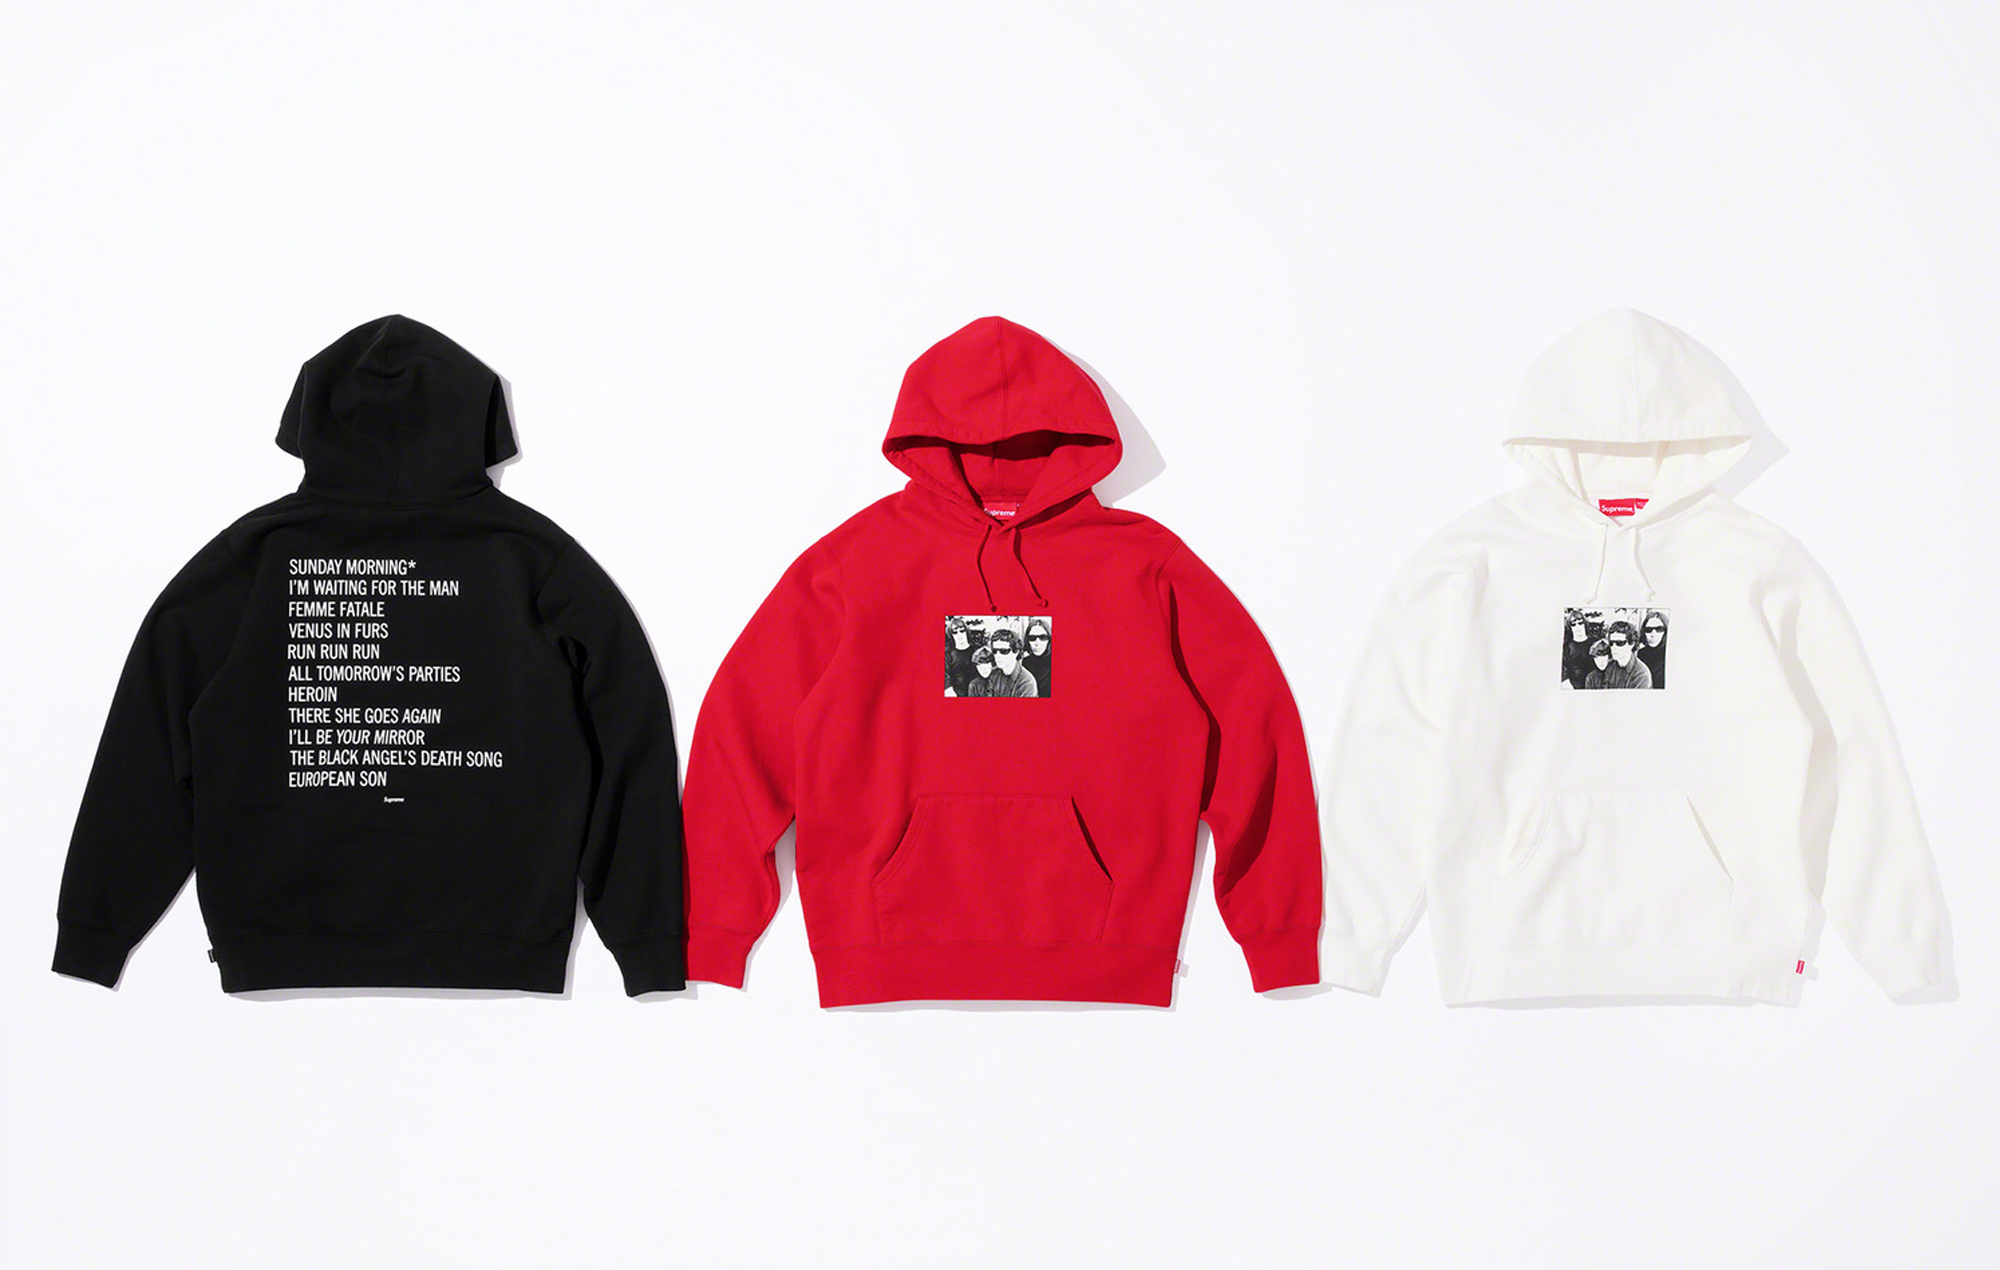 Velvet Underground Supreme collection 2019